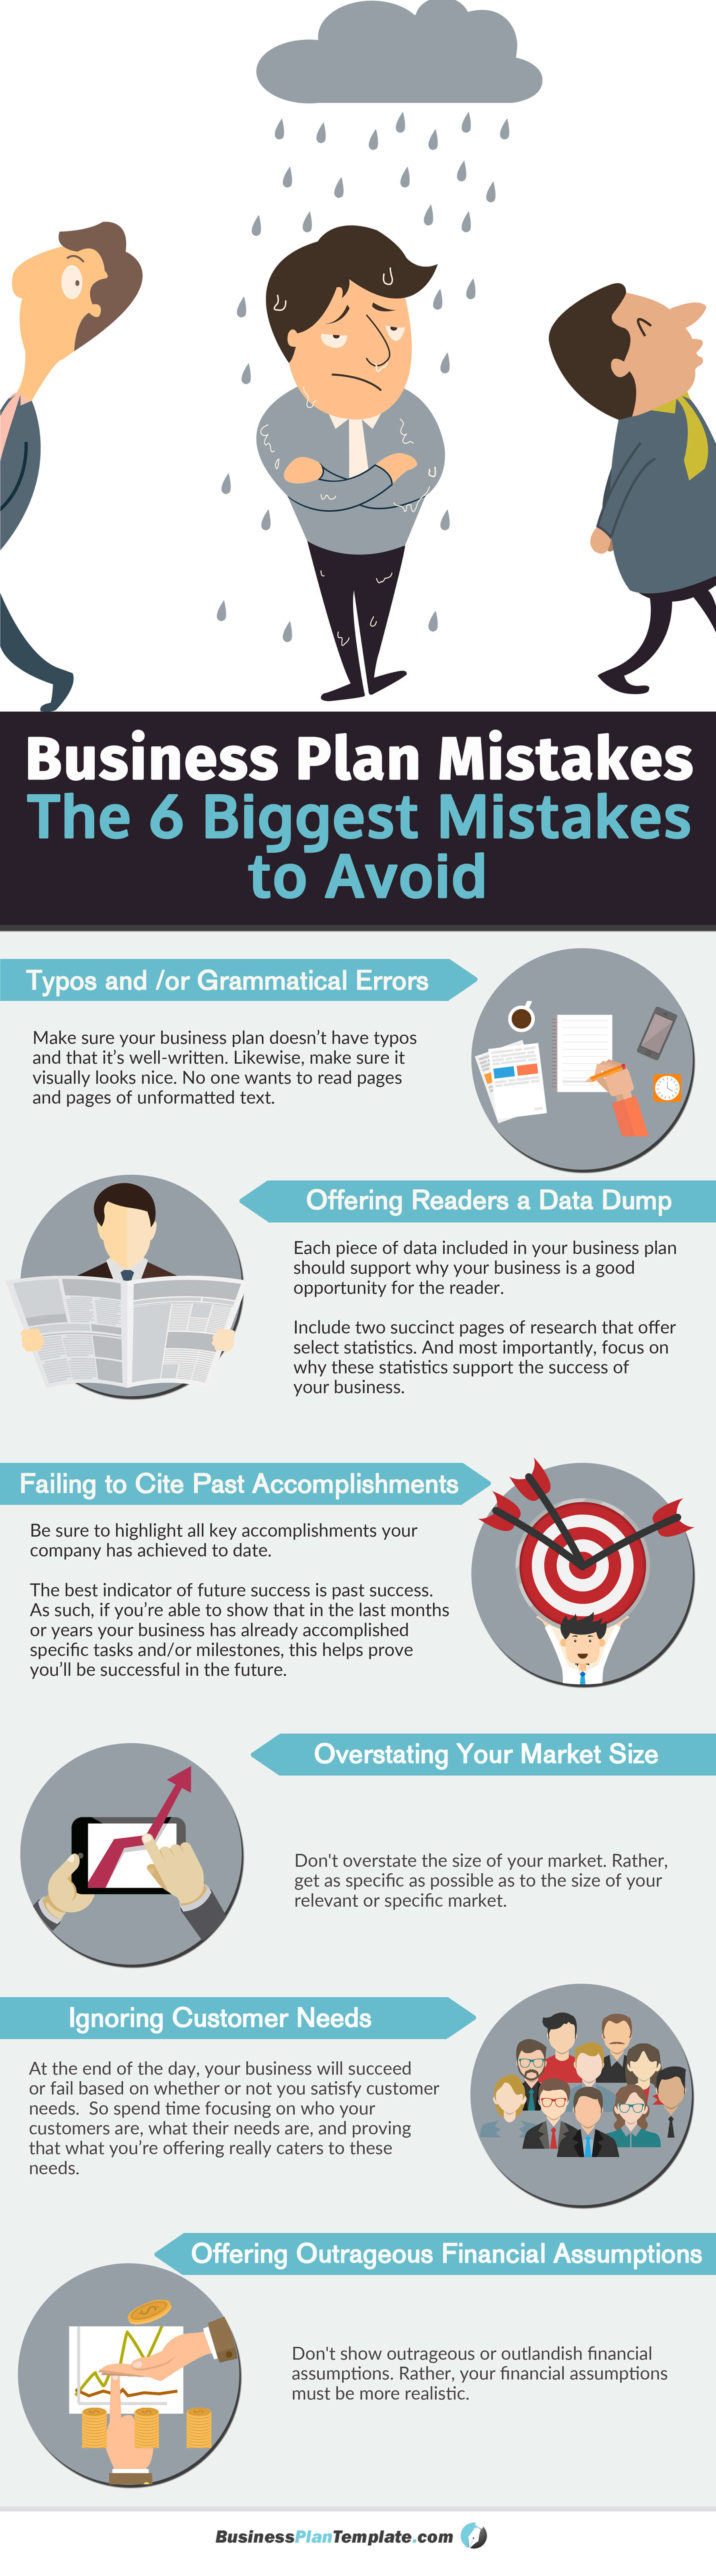 Business plan mistakes infographic